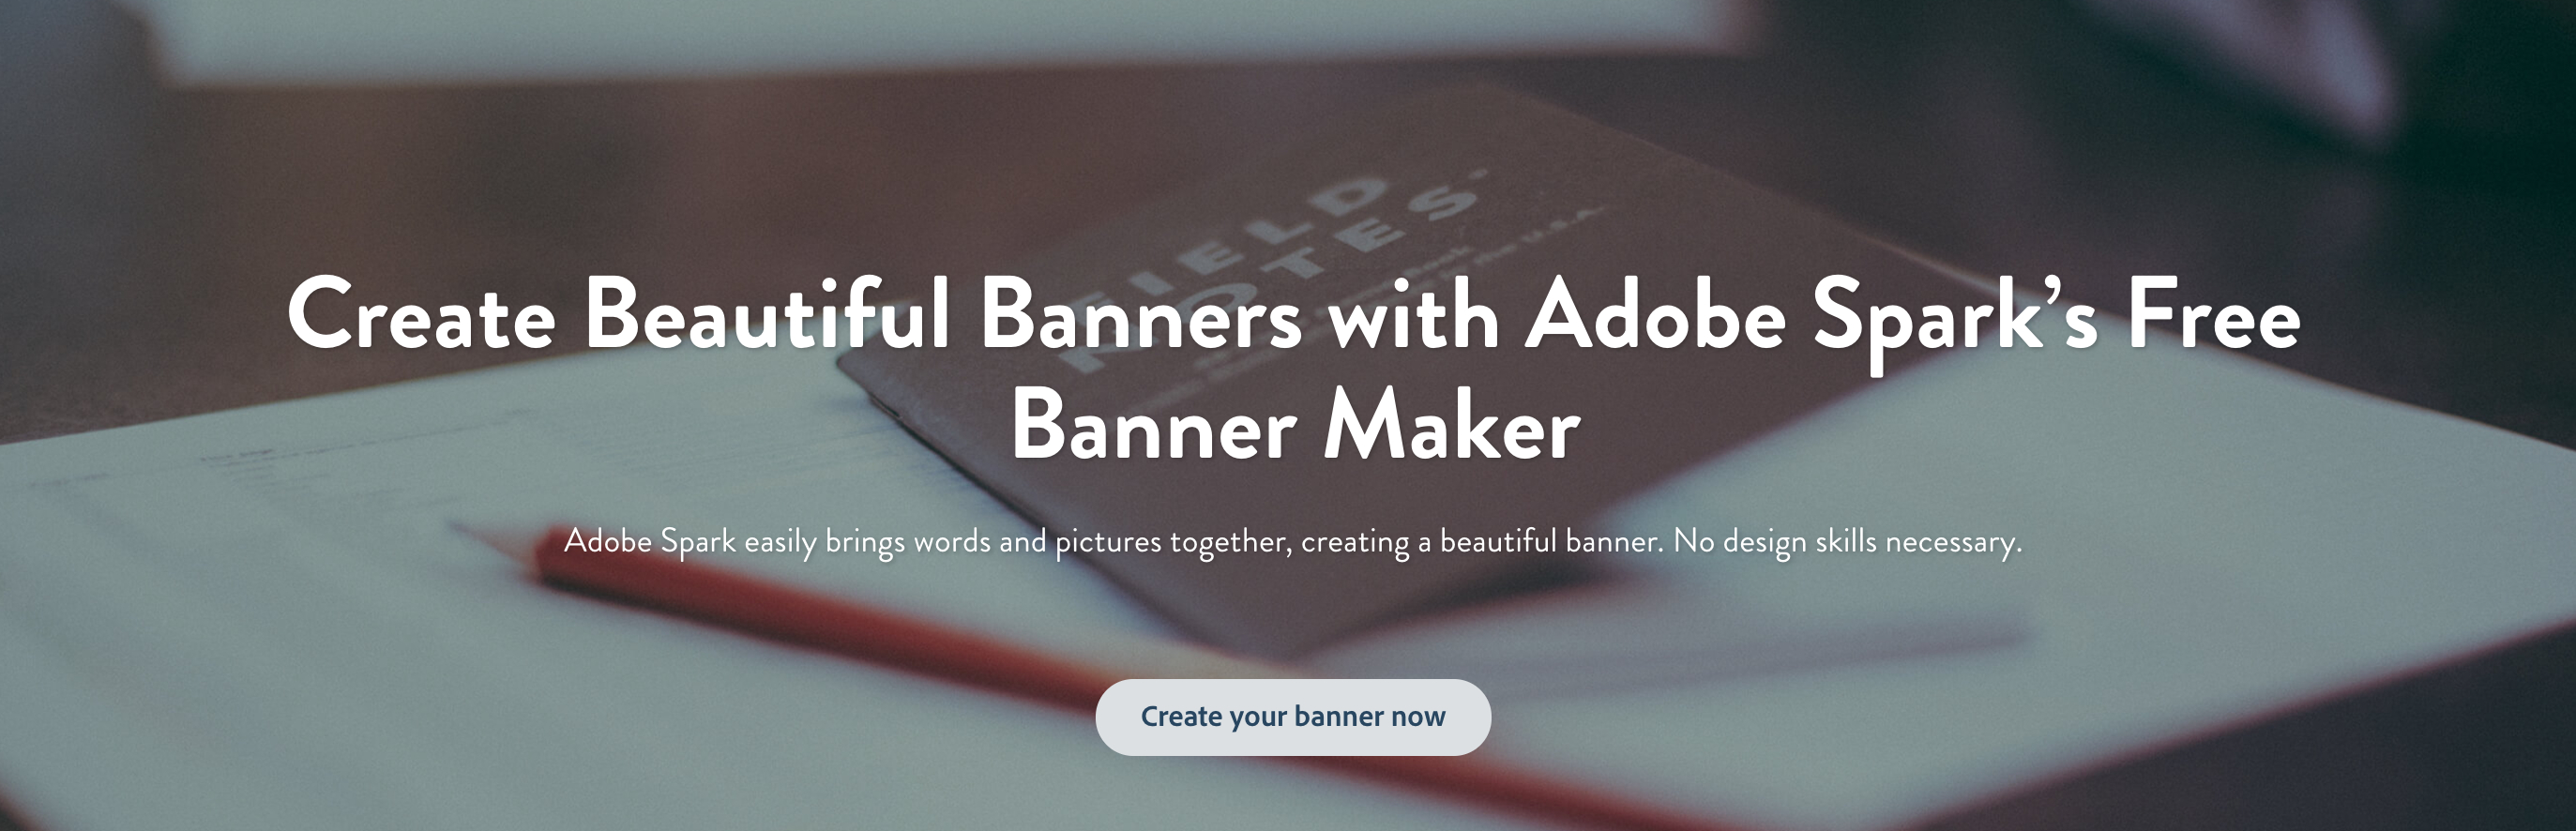 Banner Maker: Create Beautiful Banners Easily, For Free | Adobe Spark - Free Printable Banner Maker